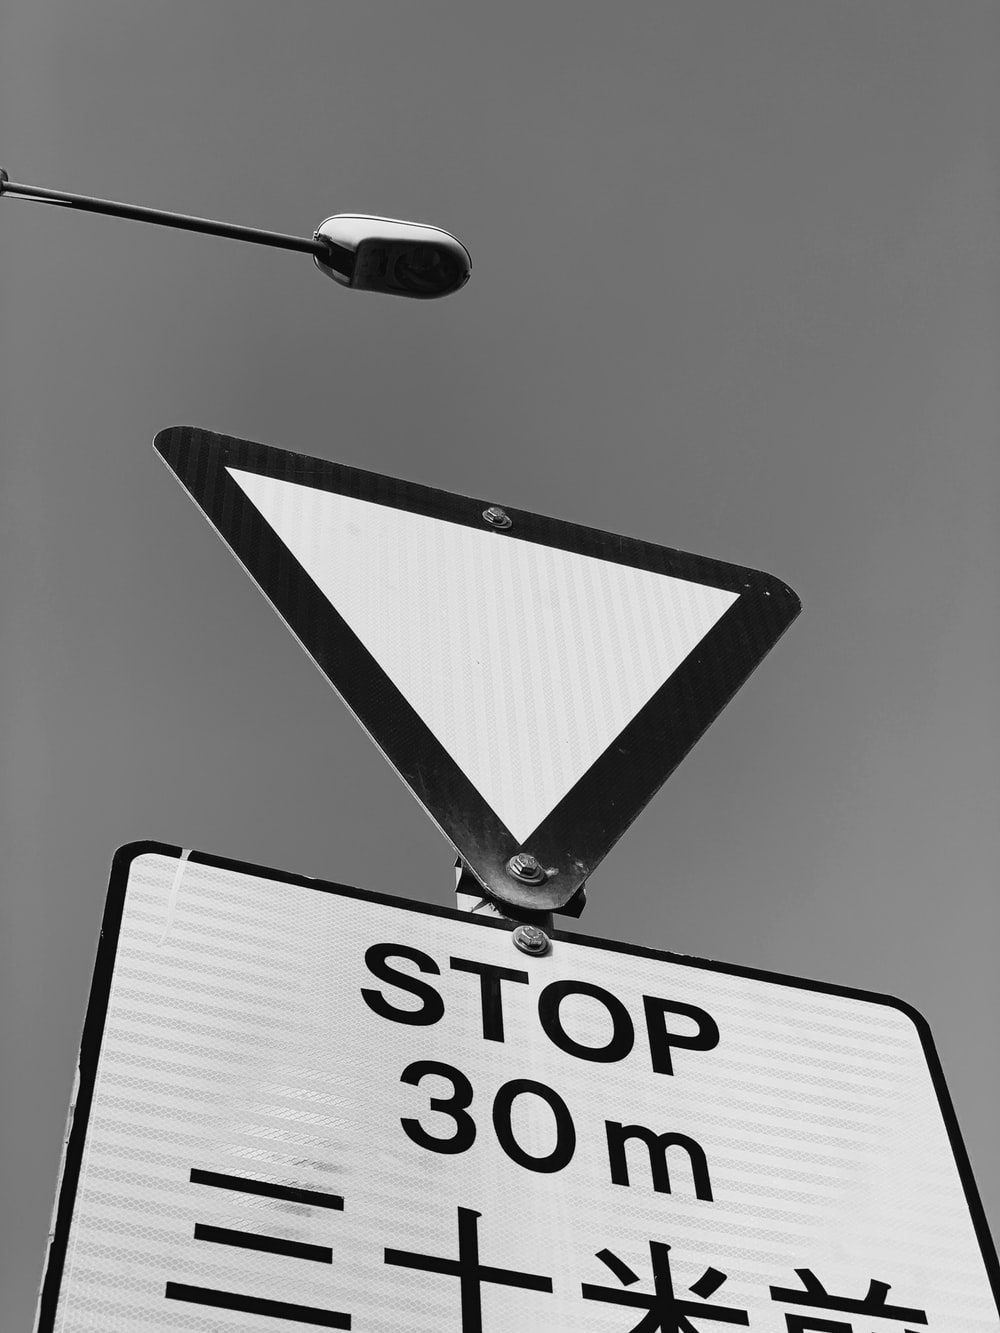 grayscale photography of road signage